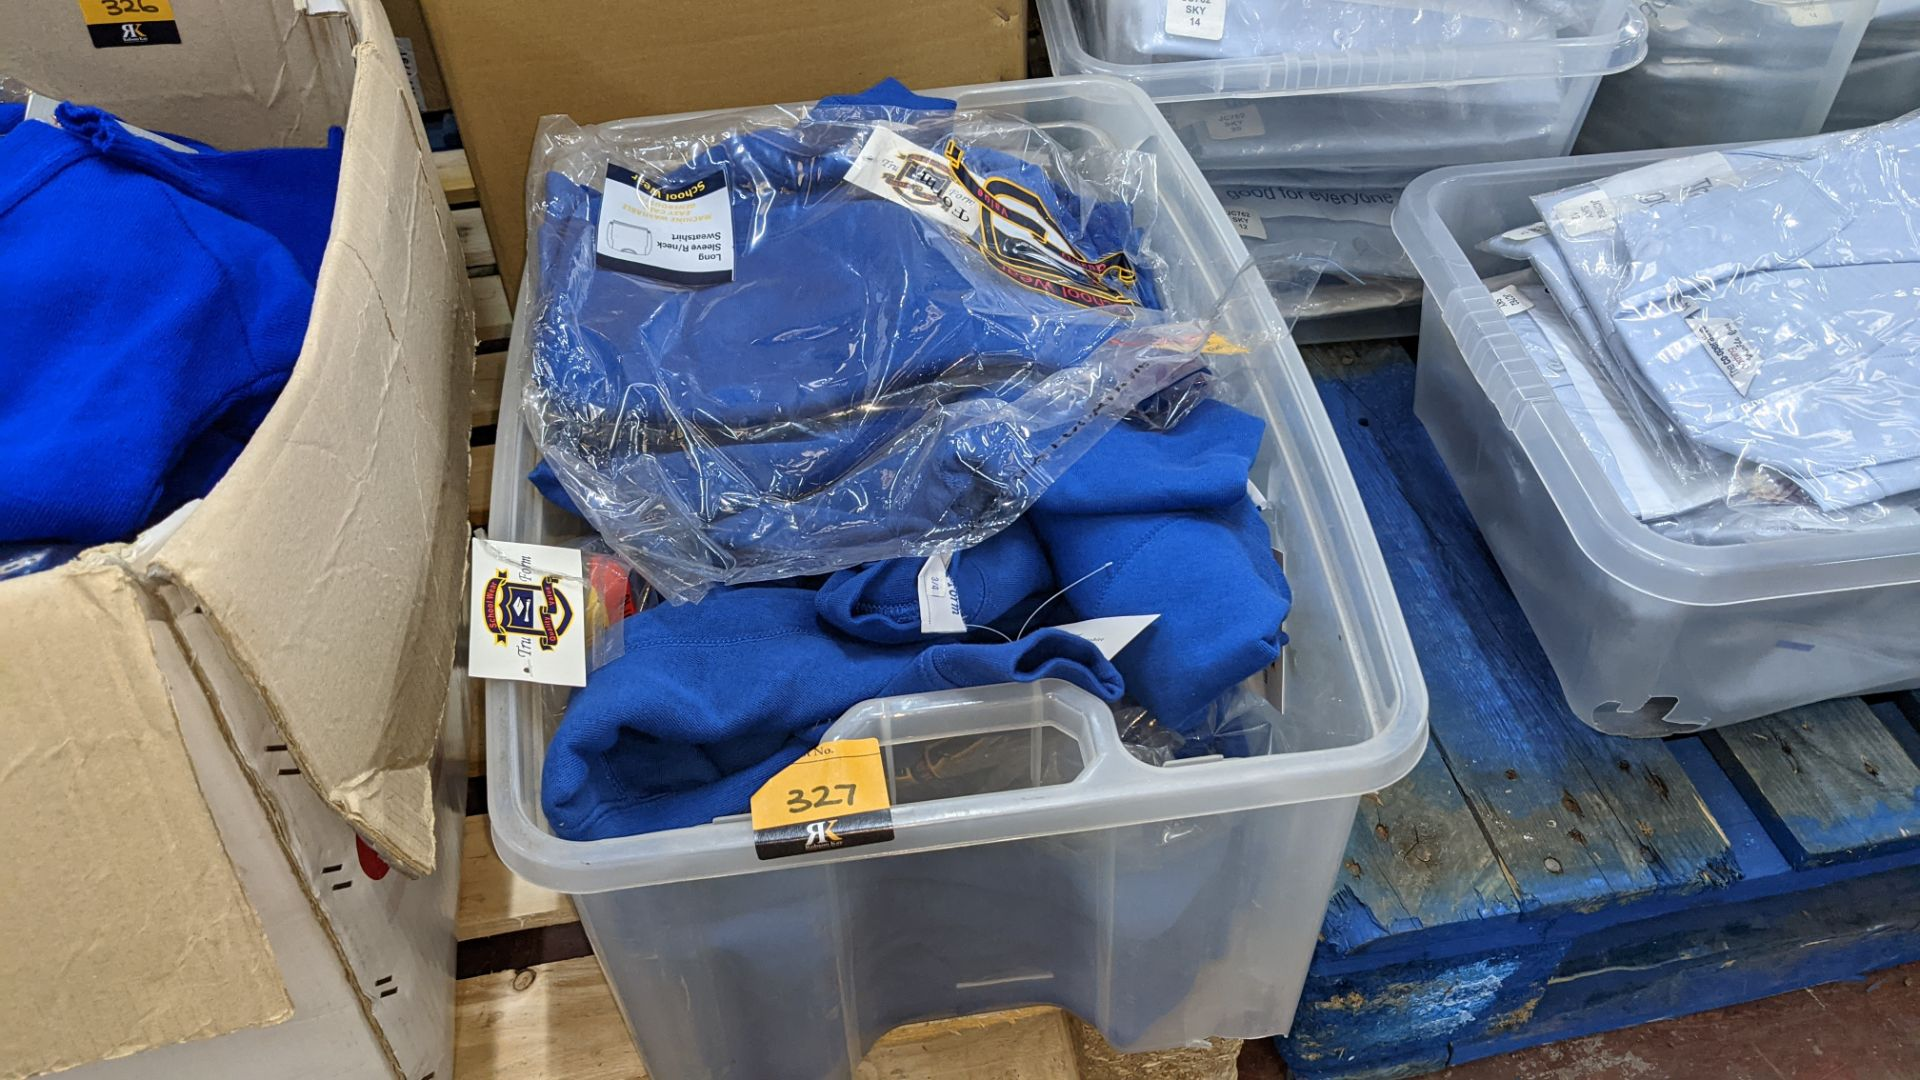 Approx 19 off blue children's sweatshirts - the contents of 1 crate. NB crate excluded - Image 2 of 4